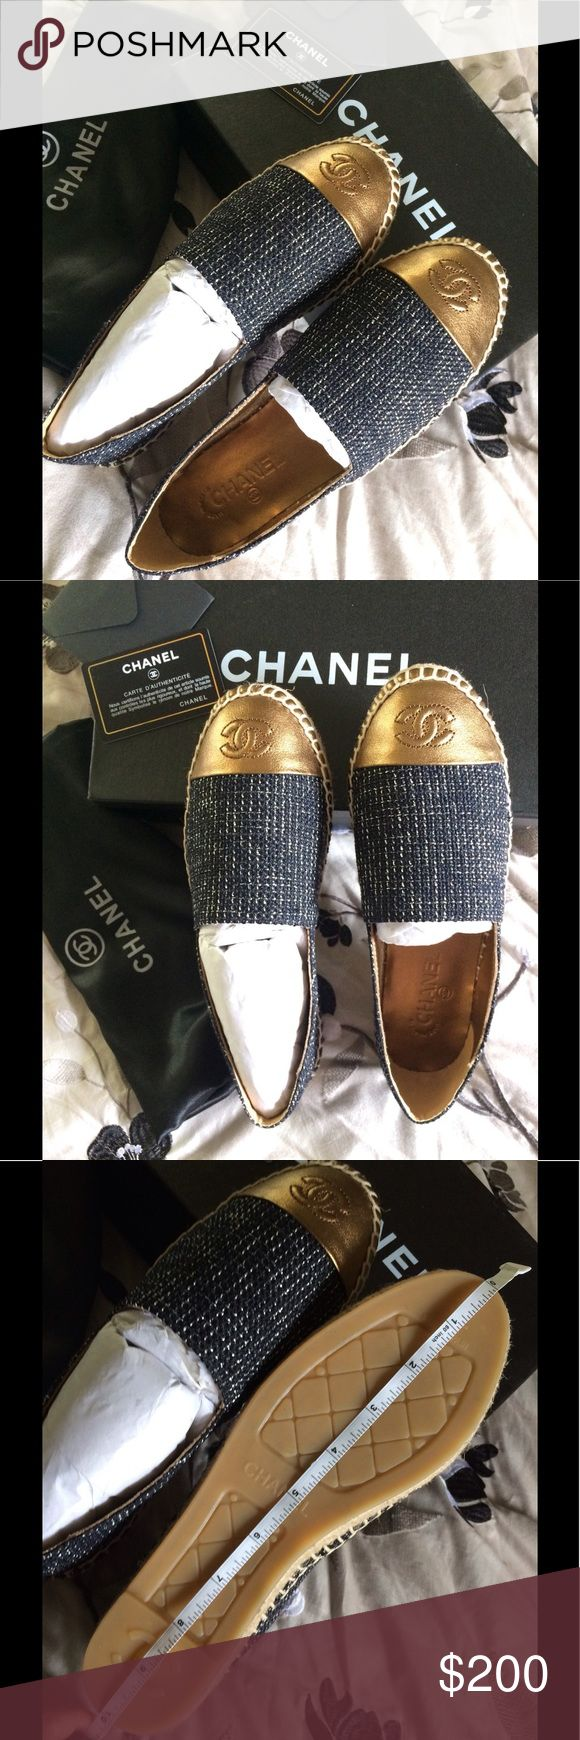 Chanel espadrilles PLEASE READ BEFORE BUY.                                    SAME DAY SHIPPING, COME WHIT DUST BAG , BOX, RUN SMALL SIZE , FIT LIKE 7 US (TAG SAID 8 ), PRICE REFLECT , HIGH QUALITY MATERIAL .                                                                 IF YOU HAVE A PROBLEM WHIT YOUR ORDER CONTACT ME BEFORE PLEASE , THANK YOU :). PRICE IS FIRM CHANEL Shoes Espadrilles